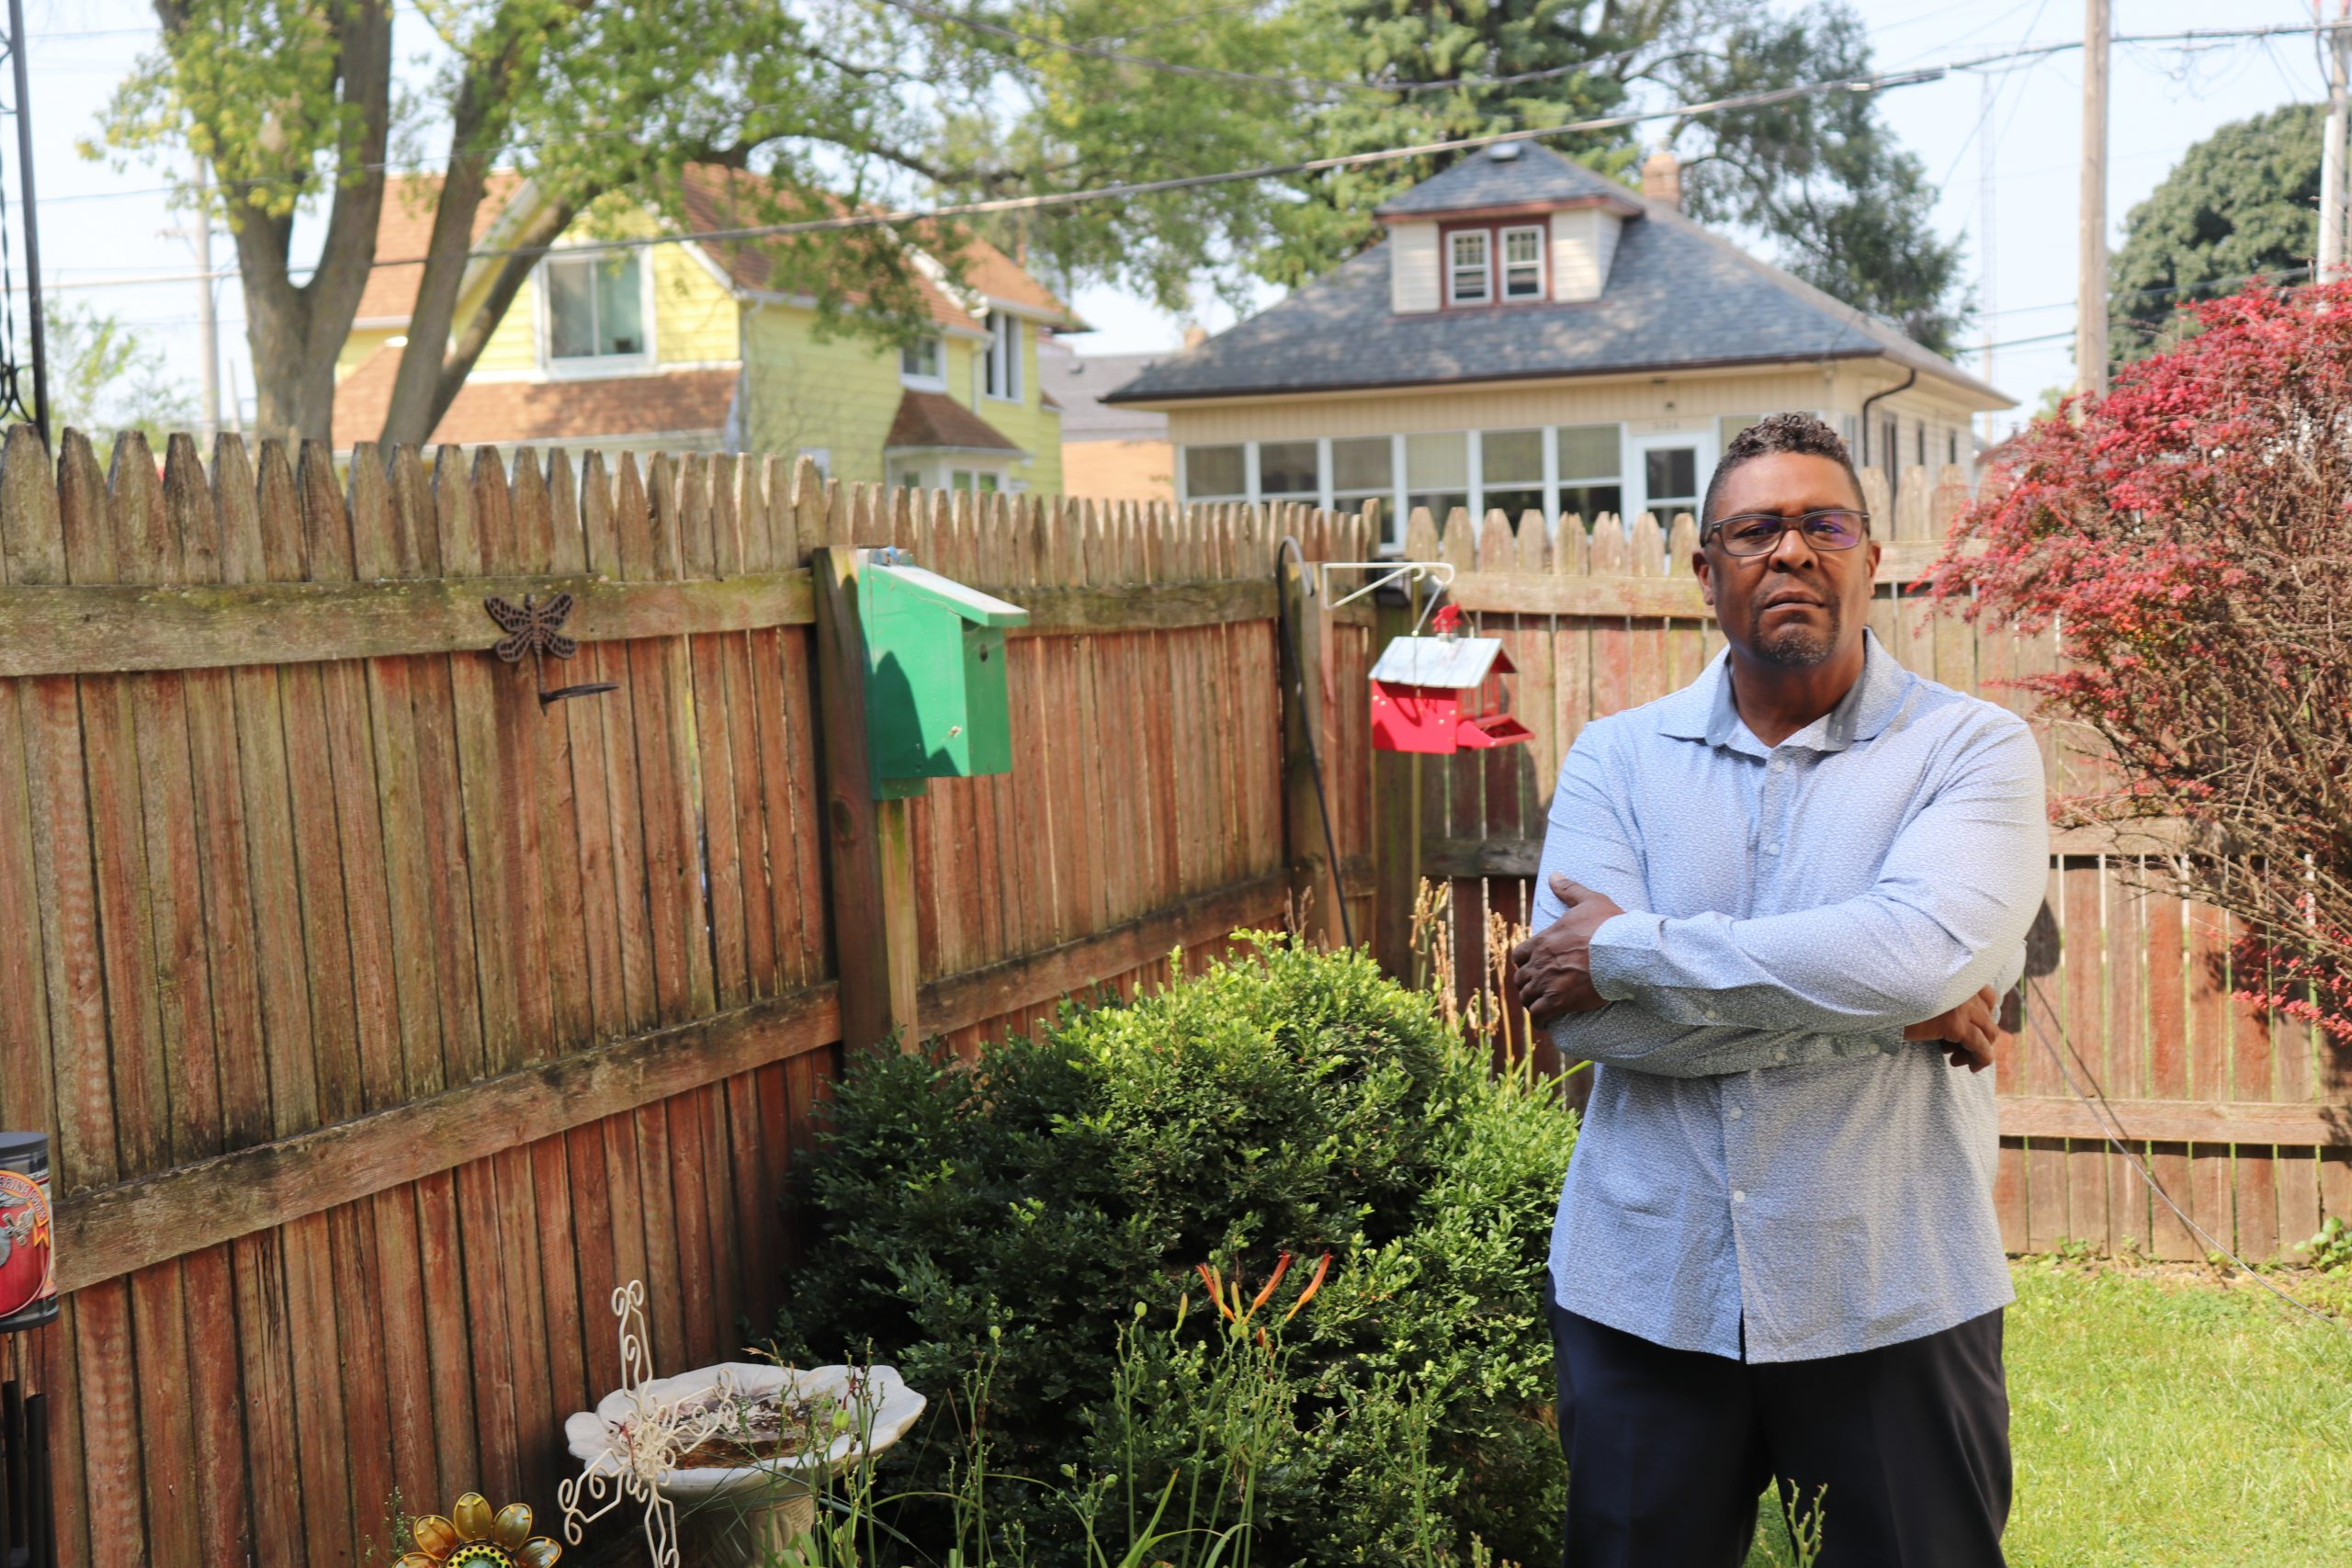 Tim Thompkins stands in his backyard in Kenosha on Wednesday, August 26, 2020, less than two miles away from where three protestors were shot the night before.